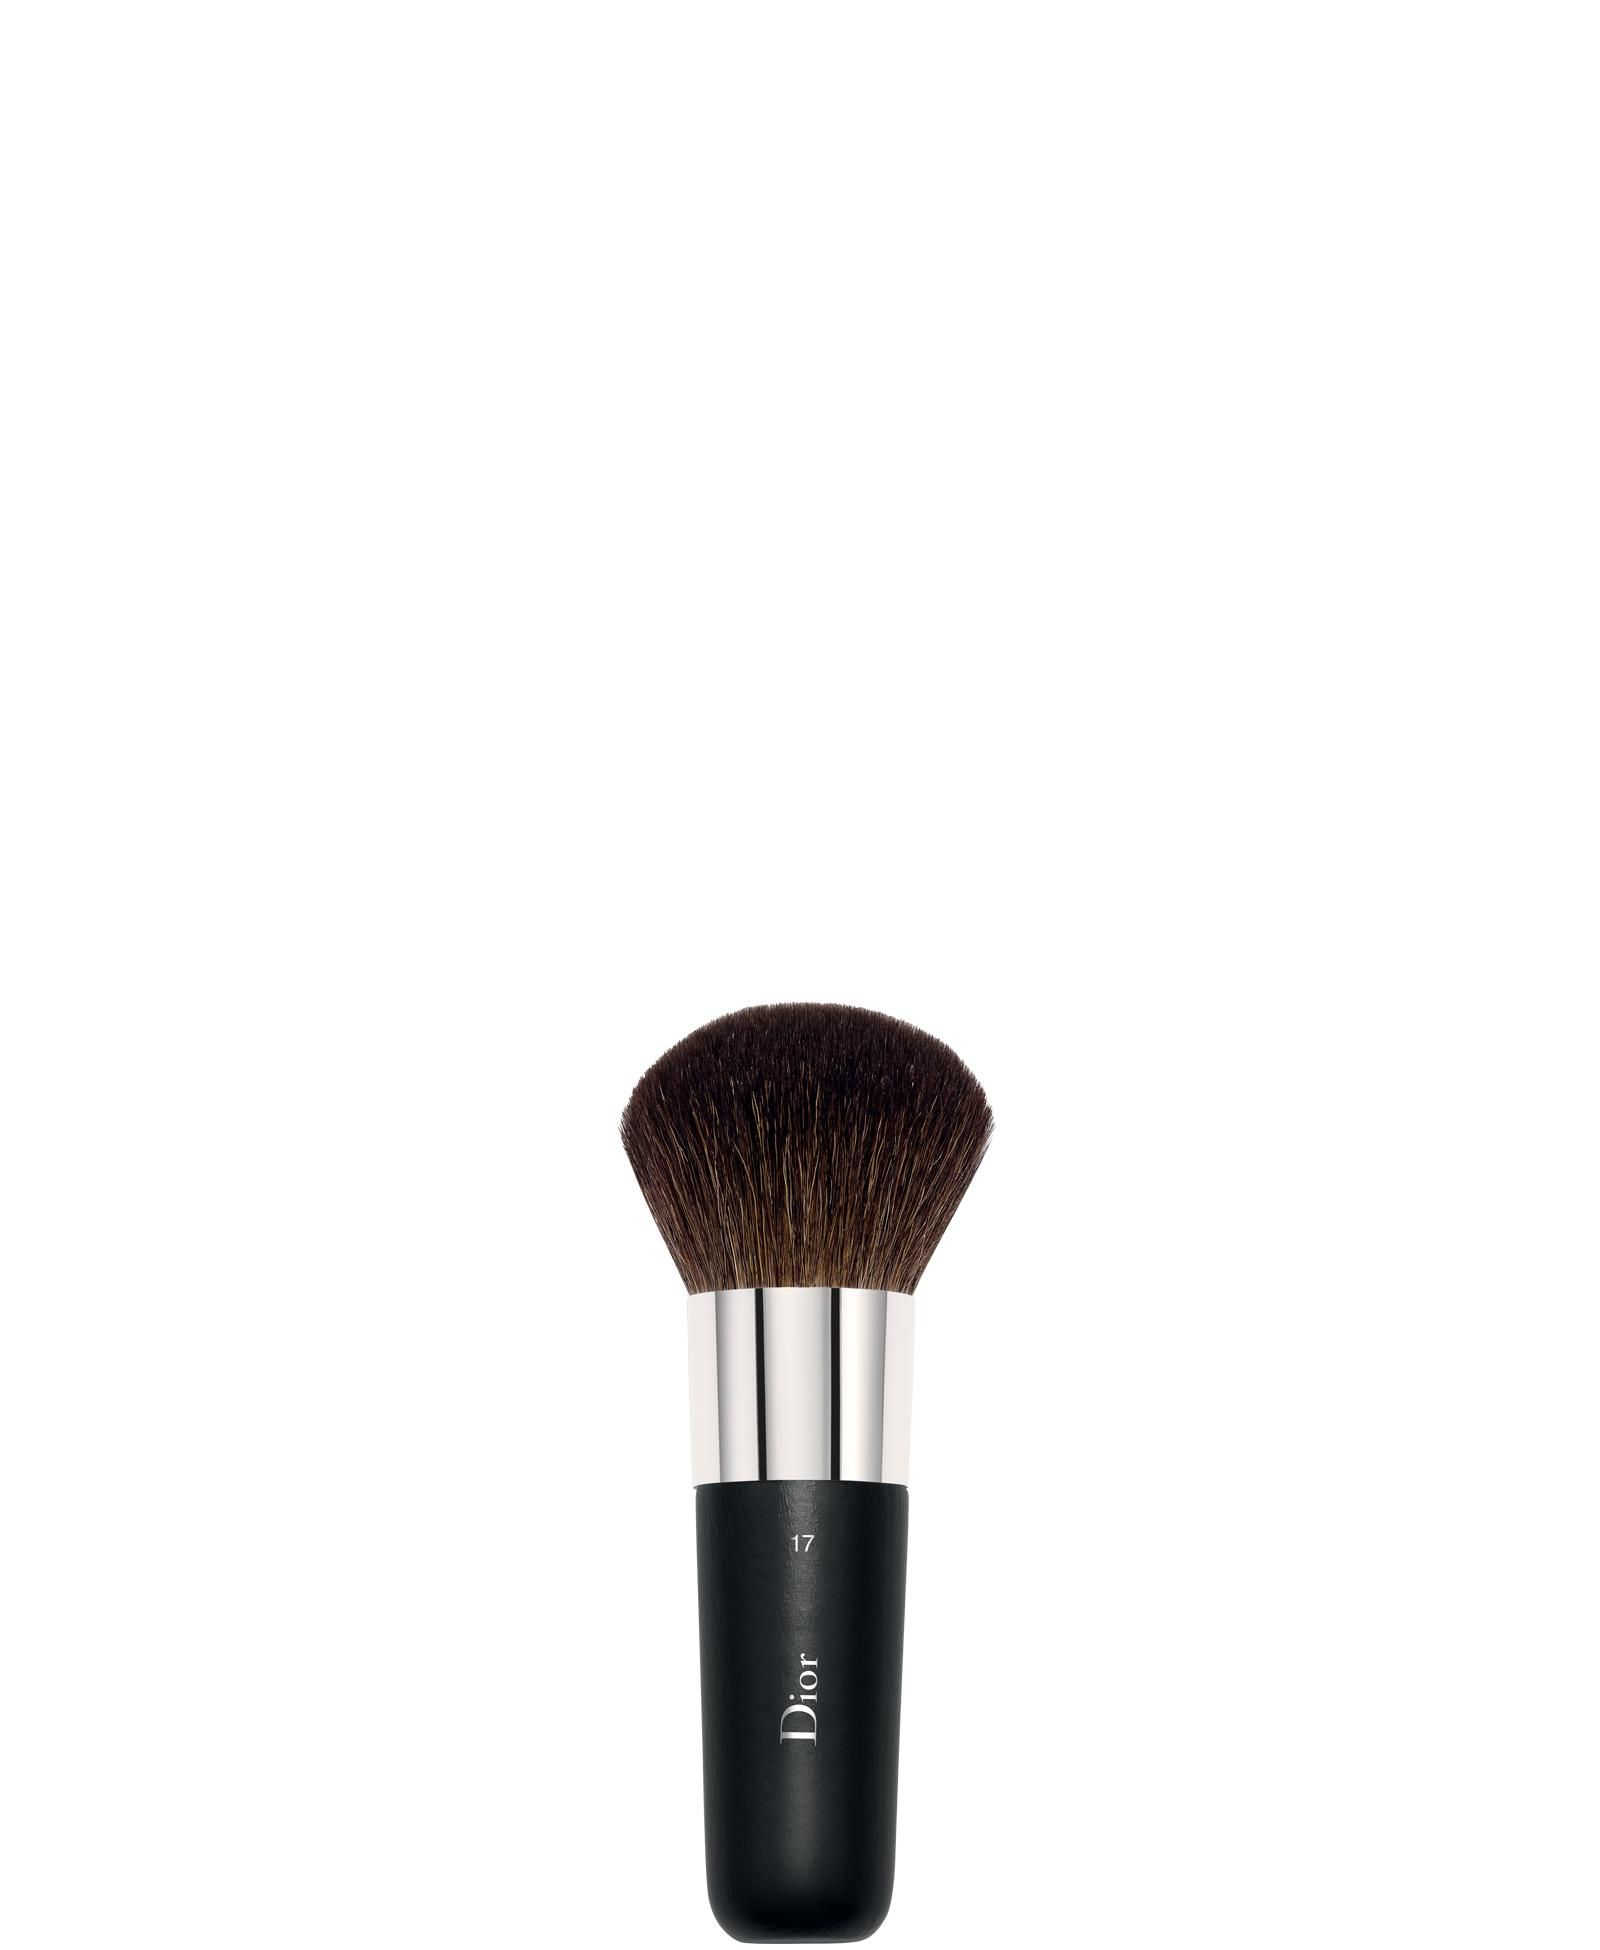 Dior Professional Finish Kabuki Brush n°17